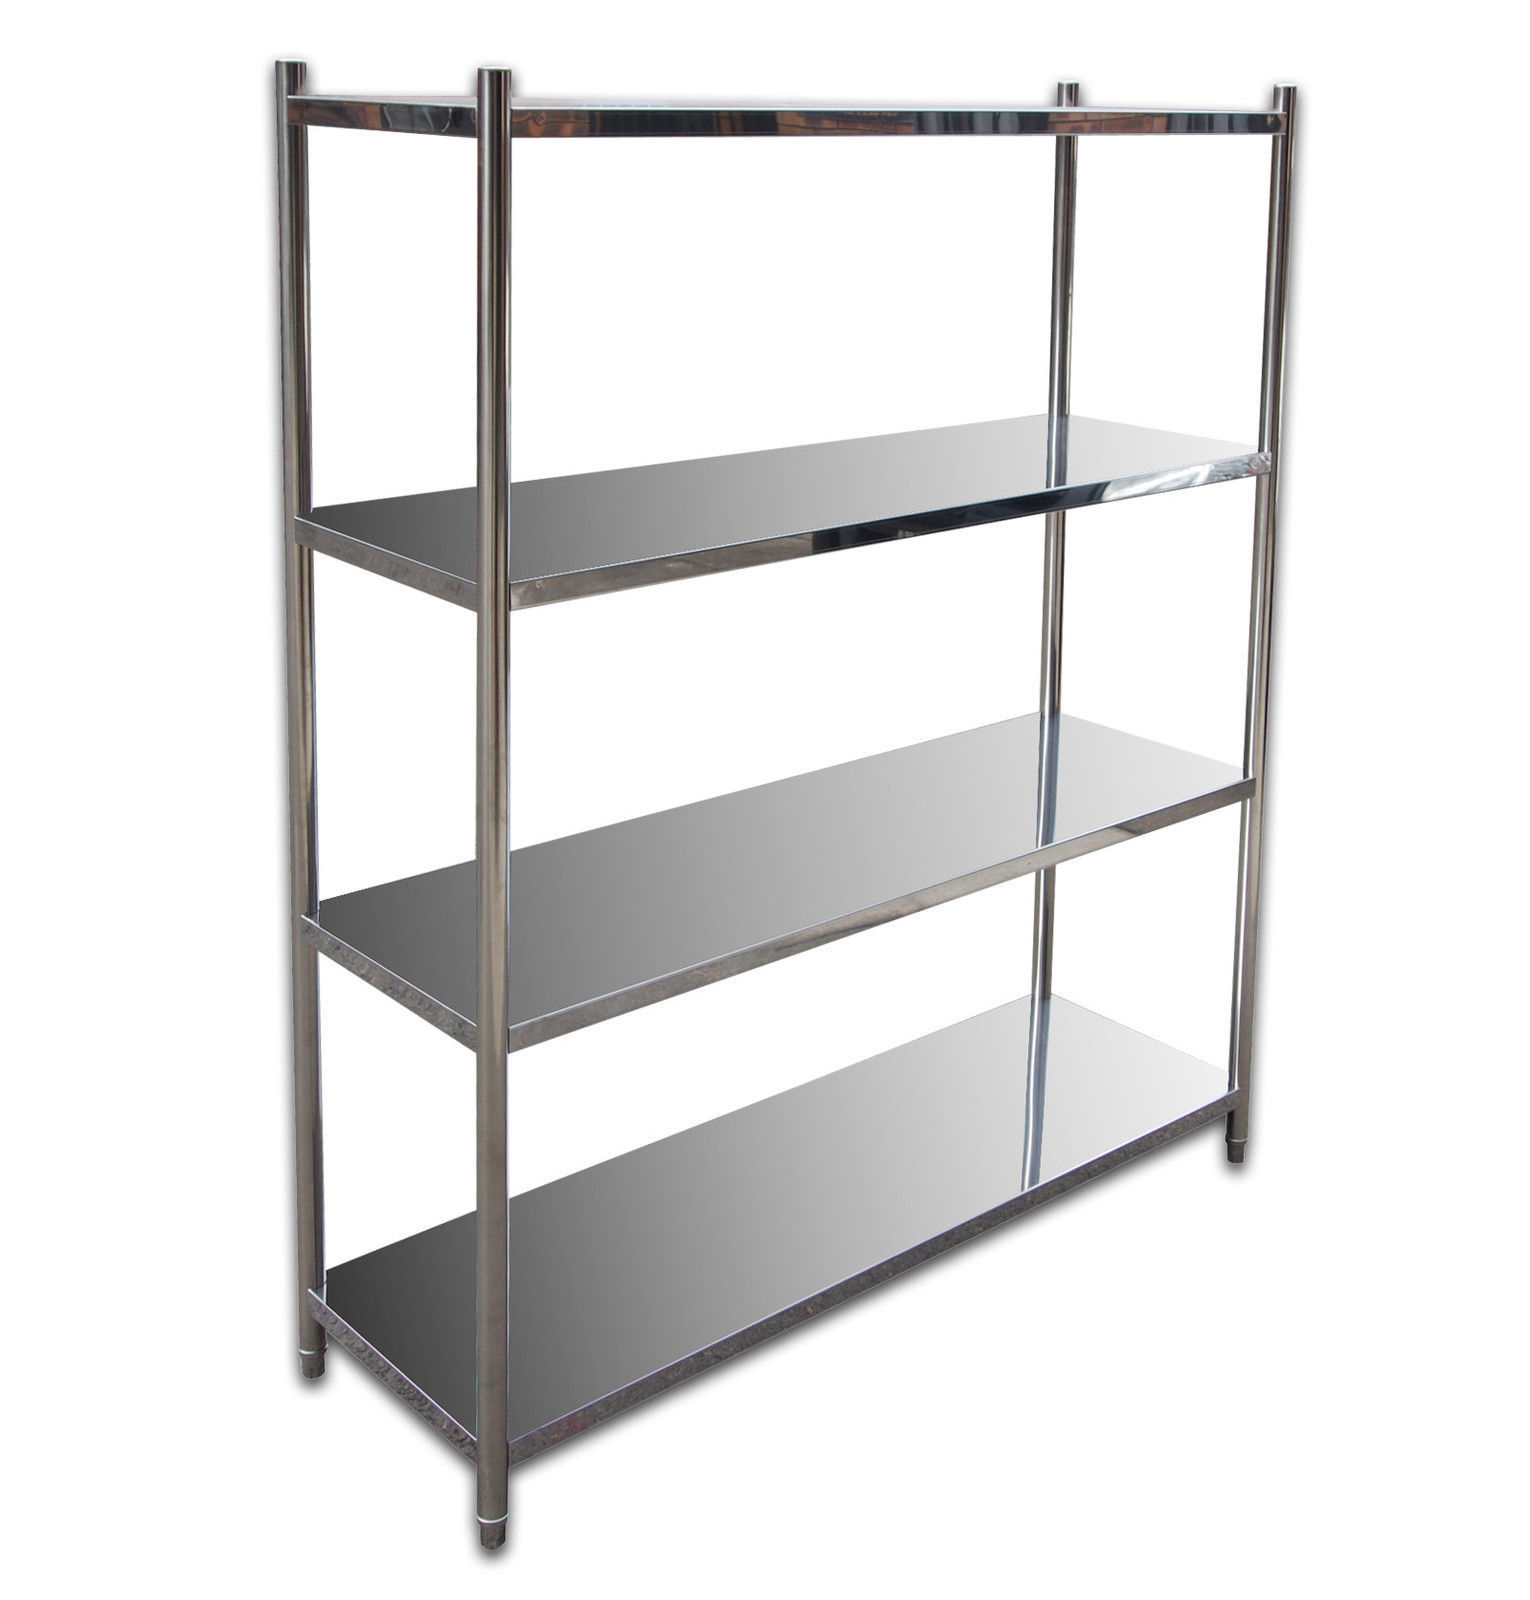 4 tier 1500mm x 500mm stainless steel shelf unit kitchen shelving display unit ebay